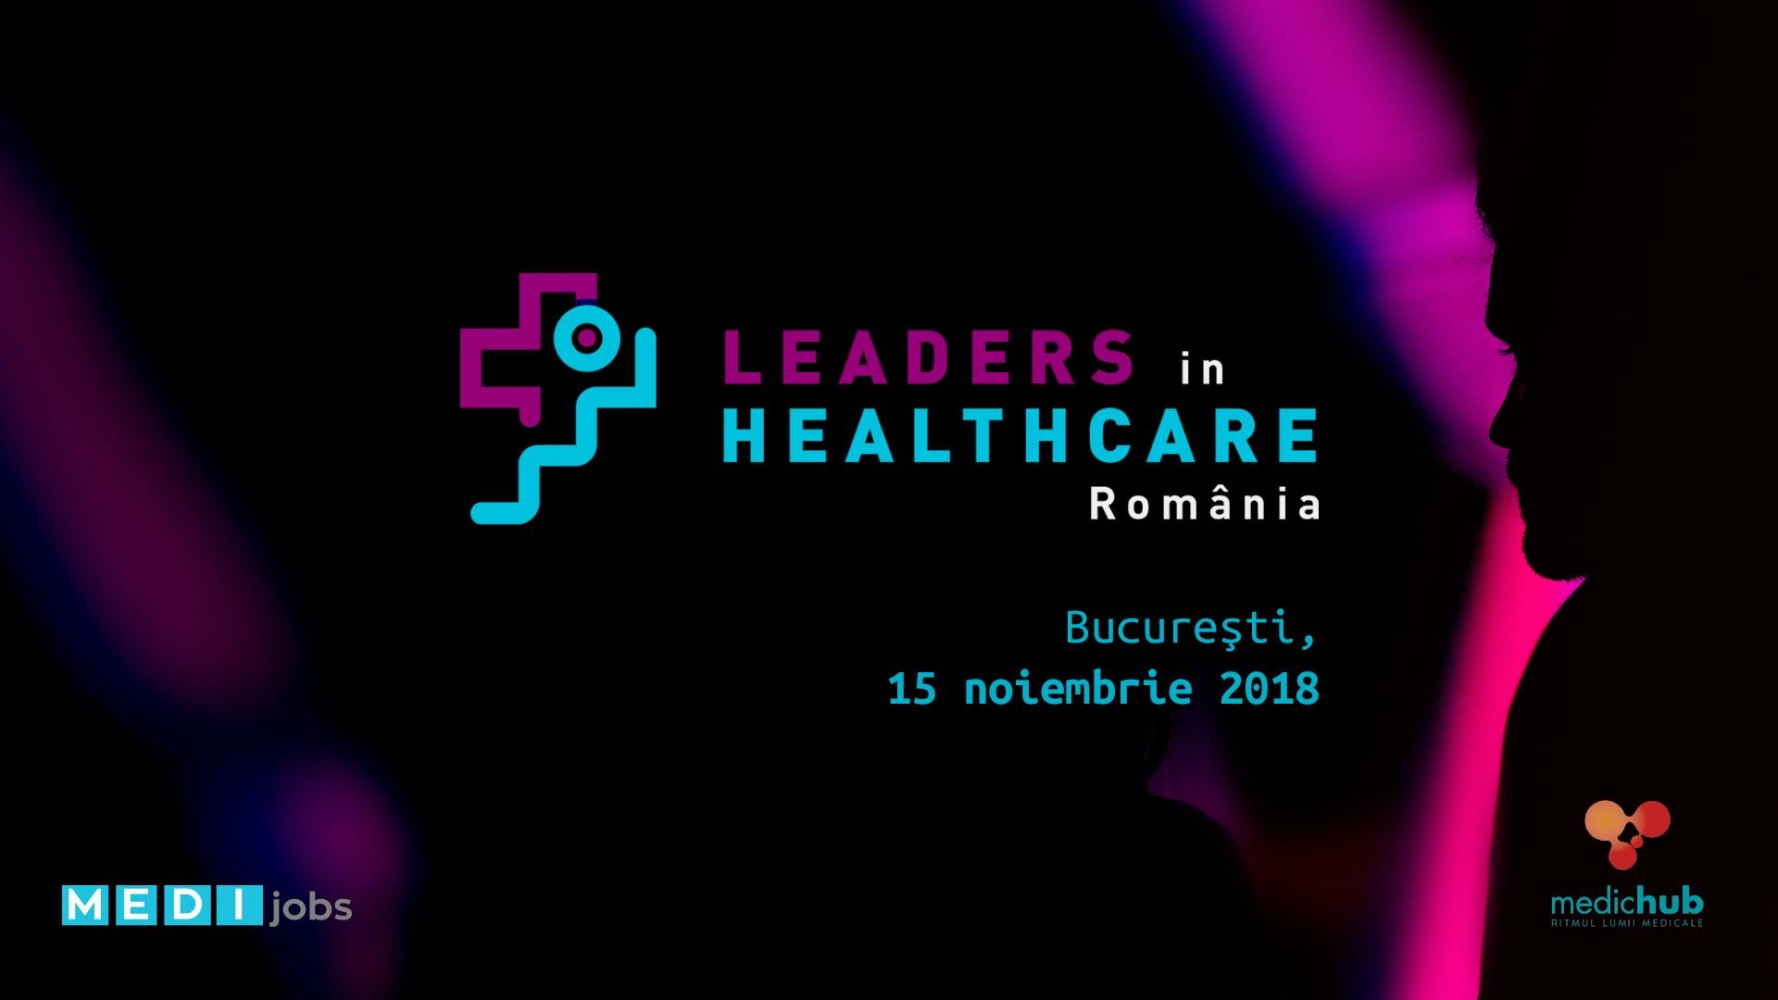 Leaders in healthcare Romania -15th of November, Bucharest